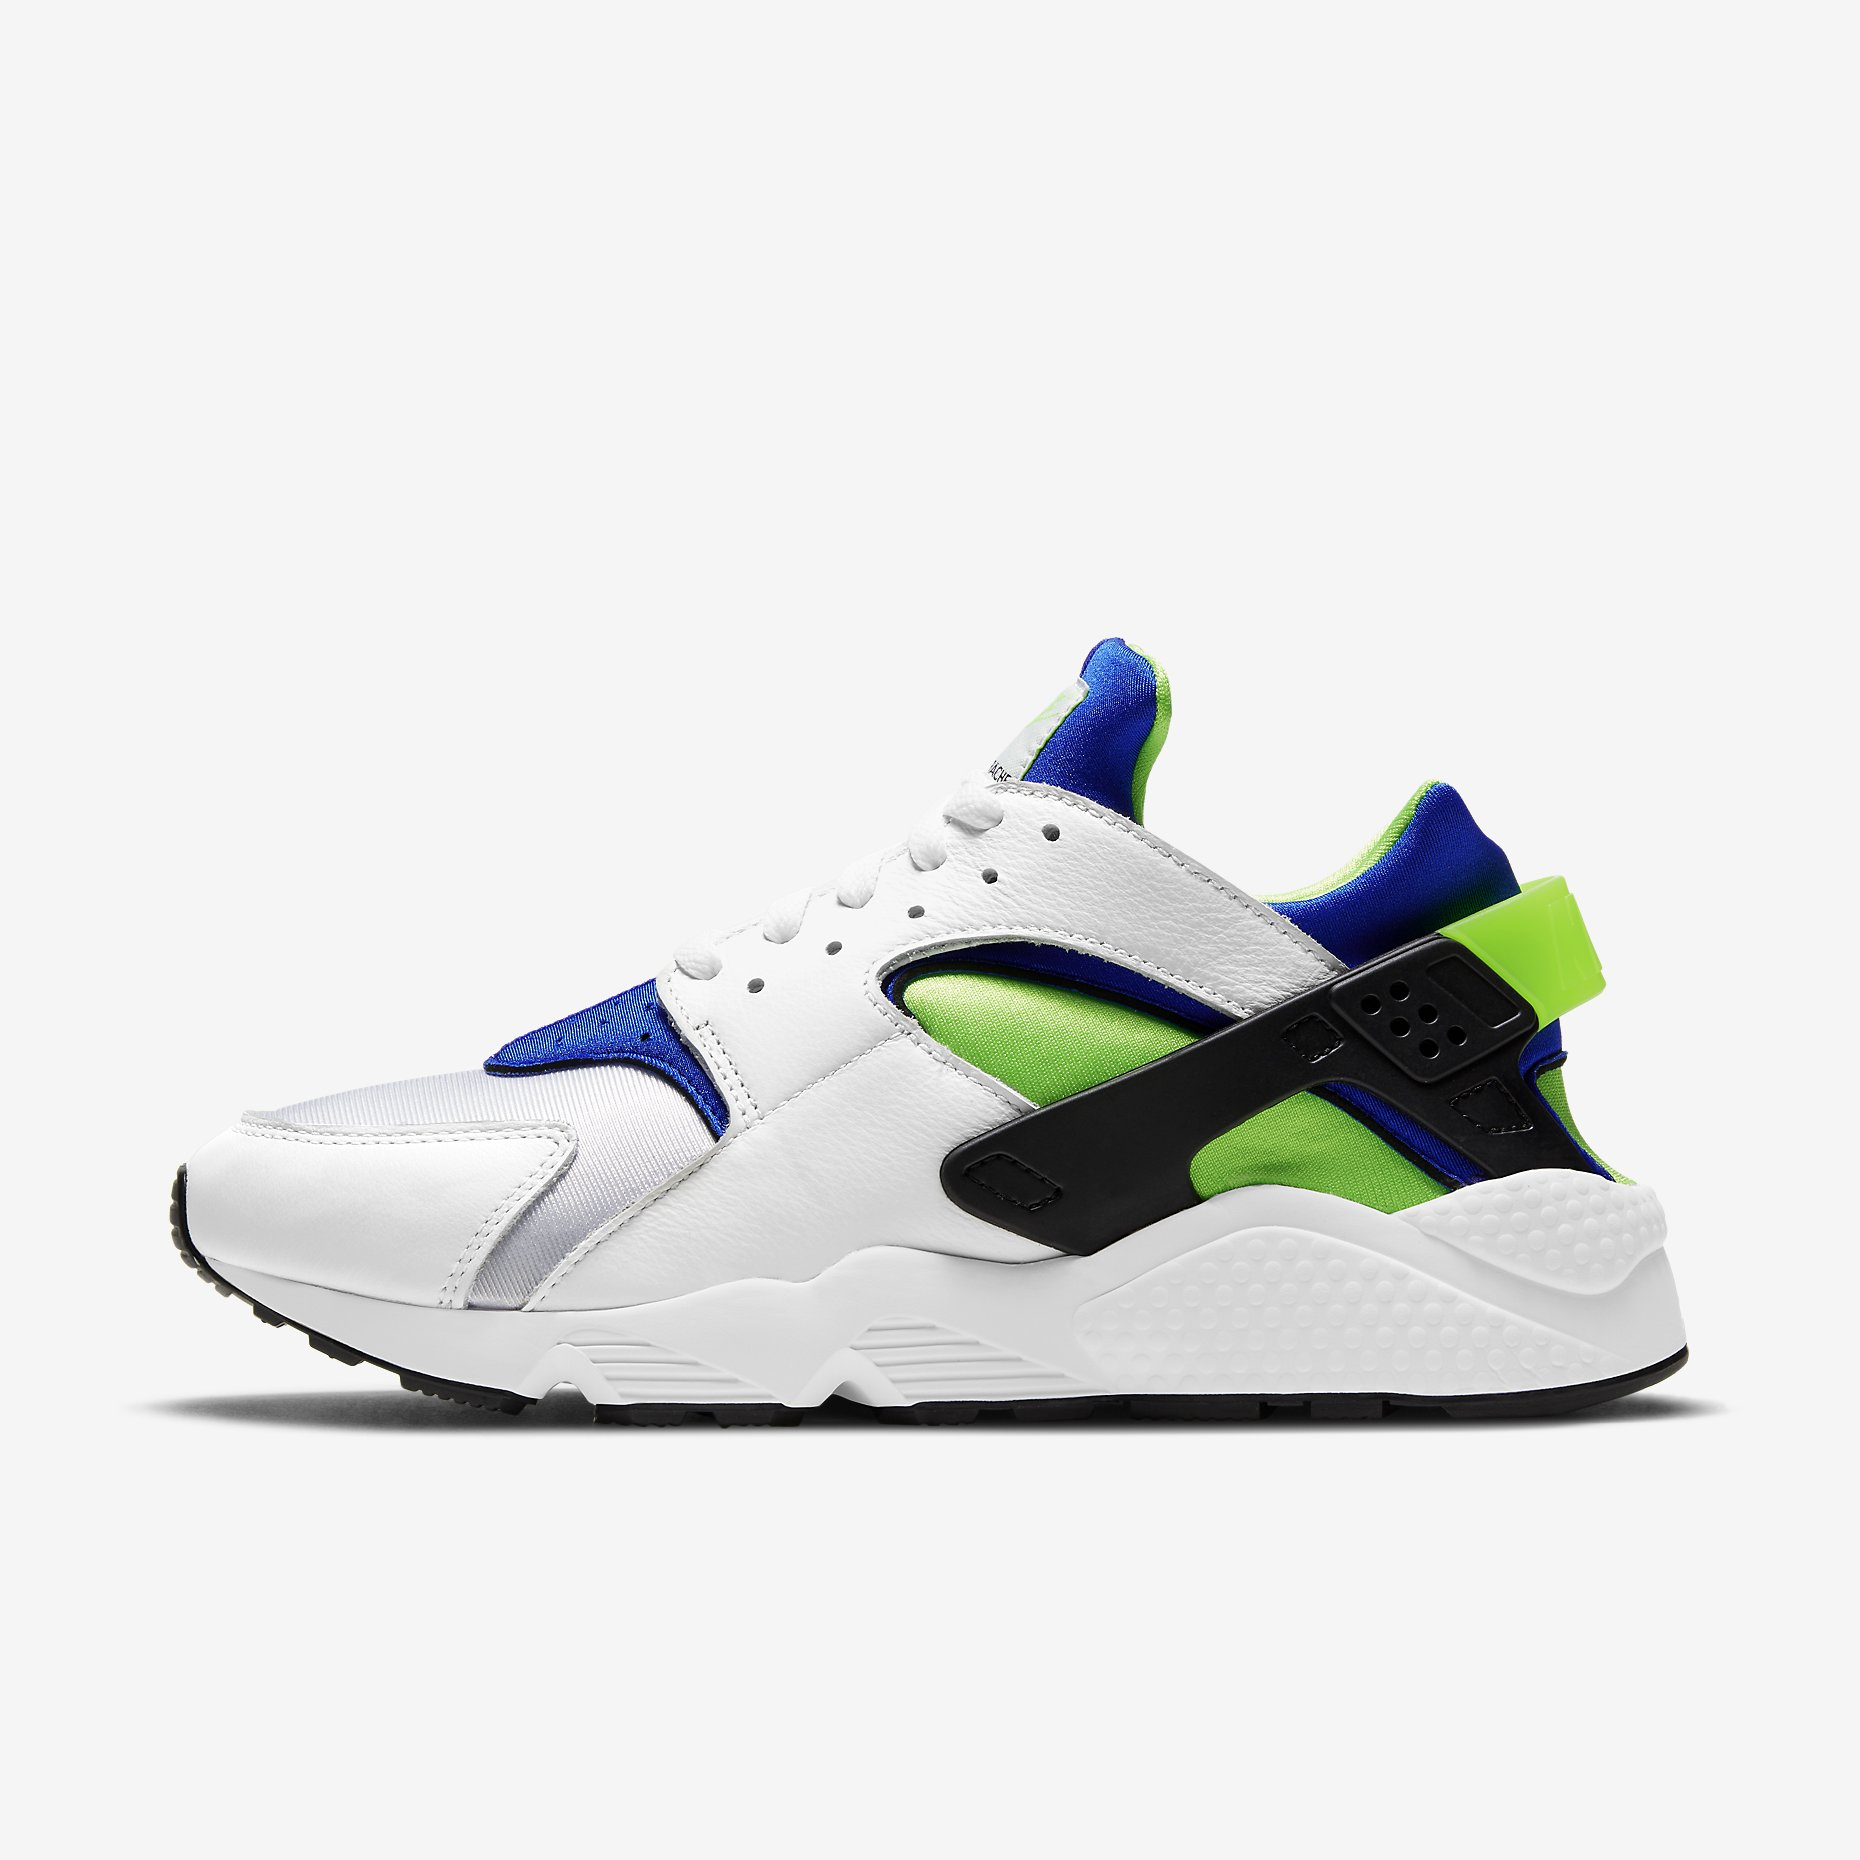 Nike Air Huarache OG 'Scream Green' 2021}